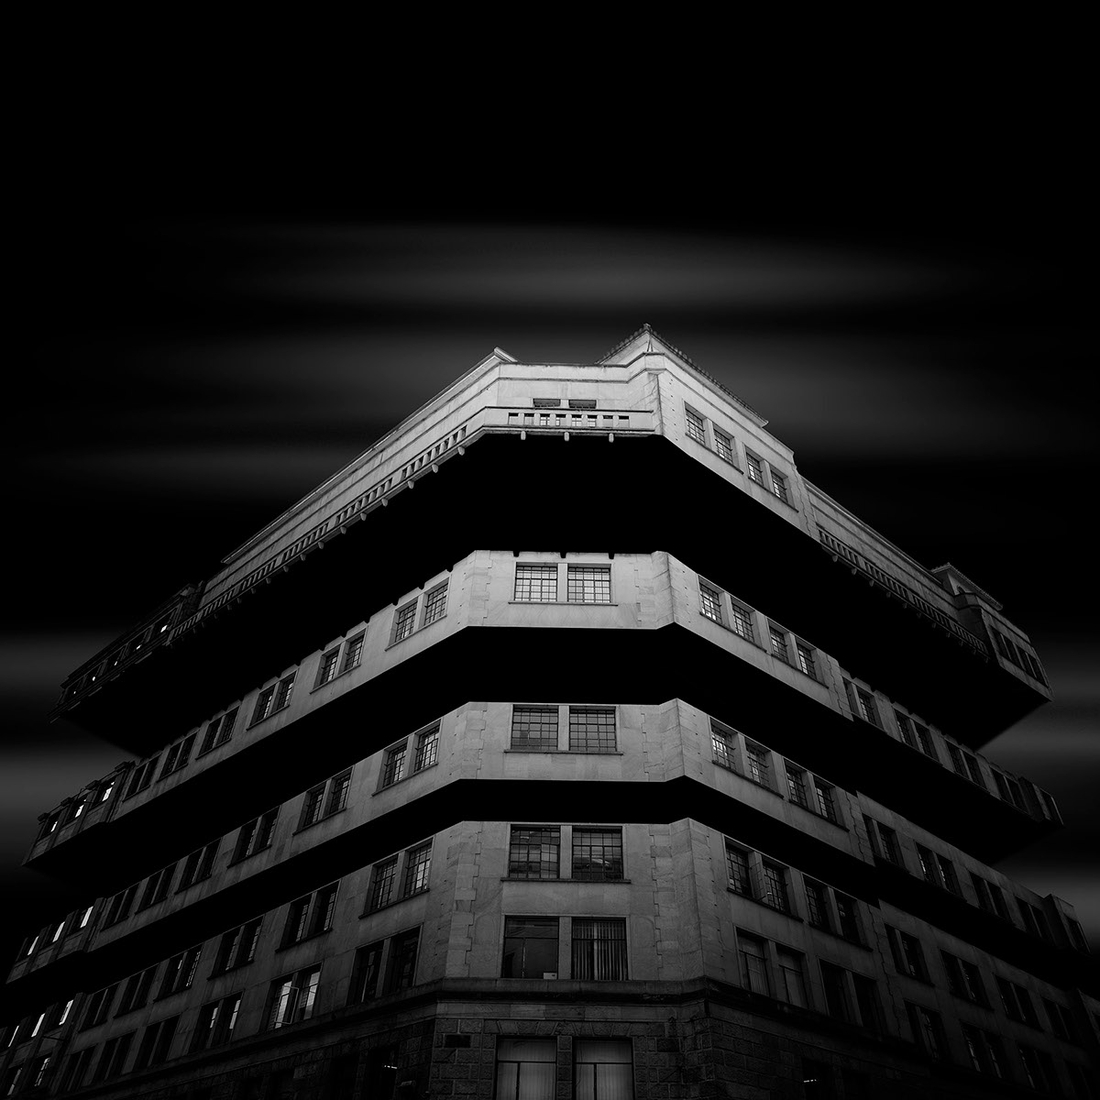 05-Daniel-Garay-Arango-Black-and-White-Surreal-Photographs-Architectural-Deconstruction-www-designstack-co